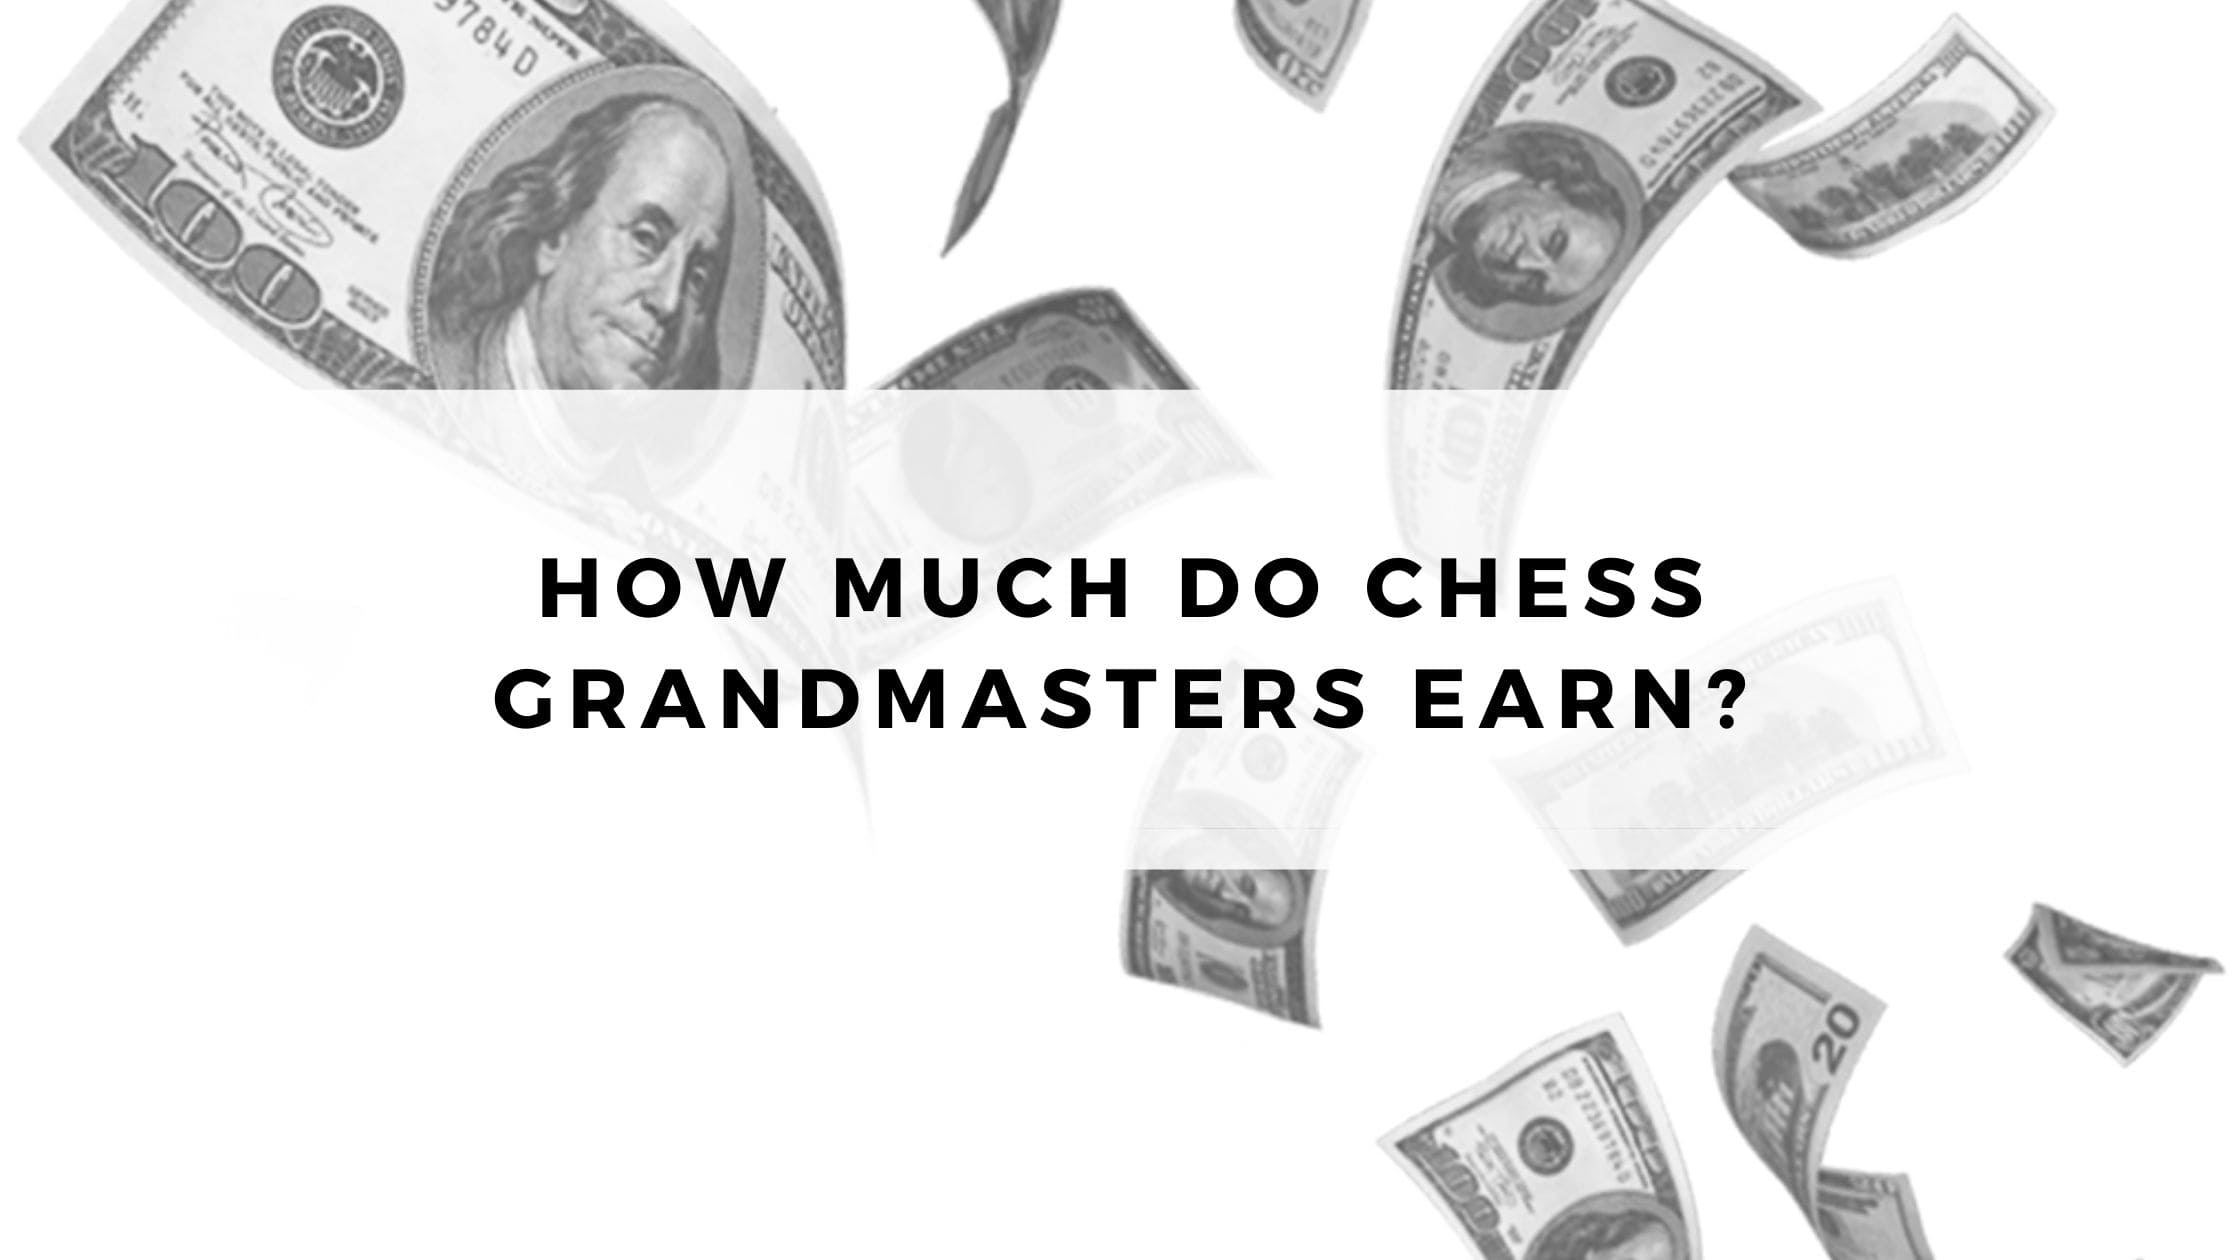 How Much do Chess Grandmasters Earn?